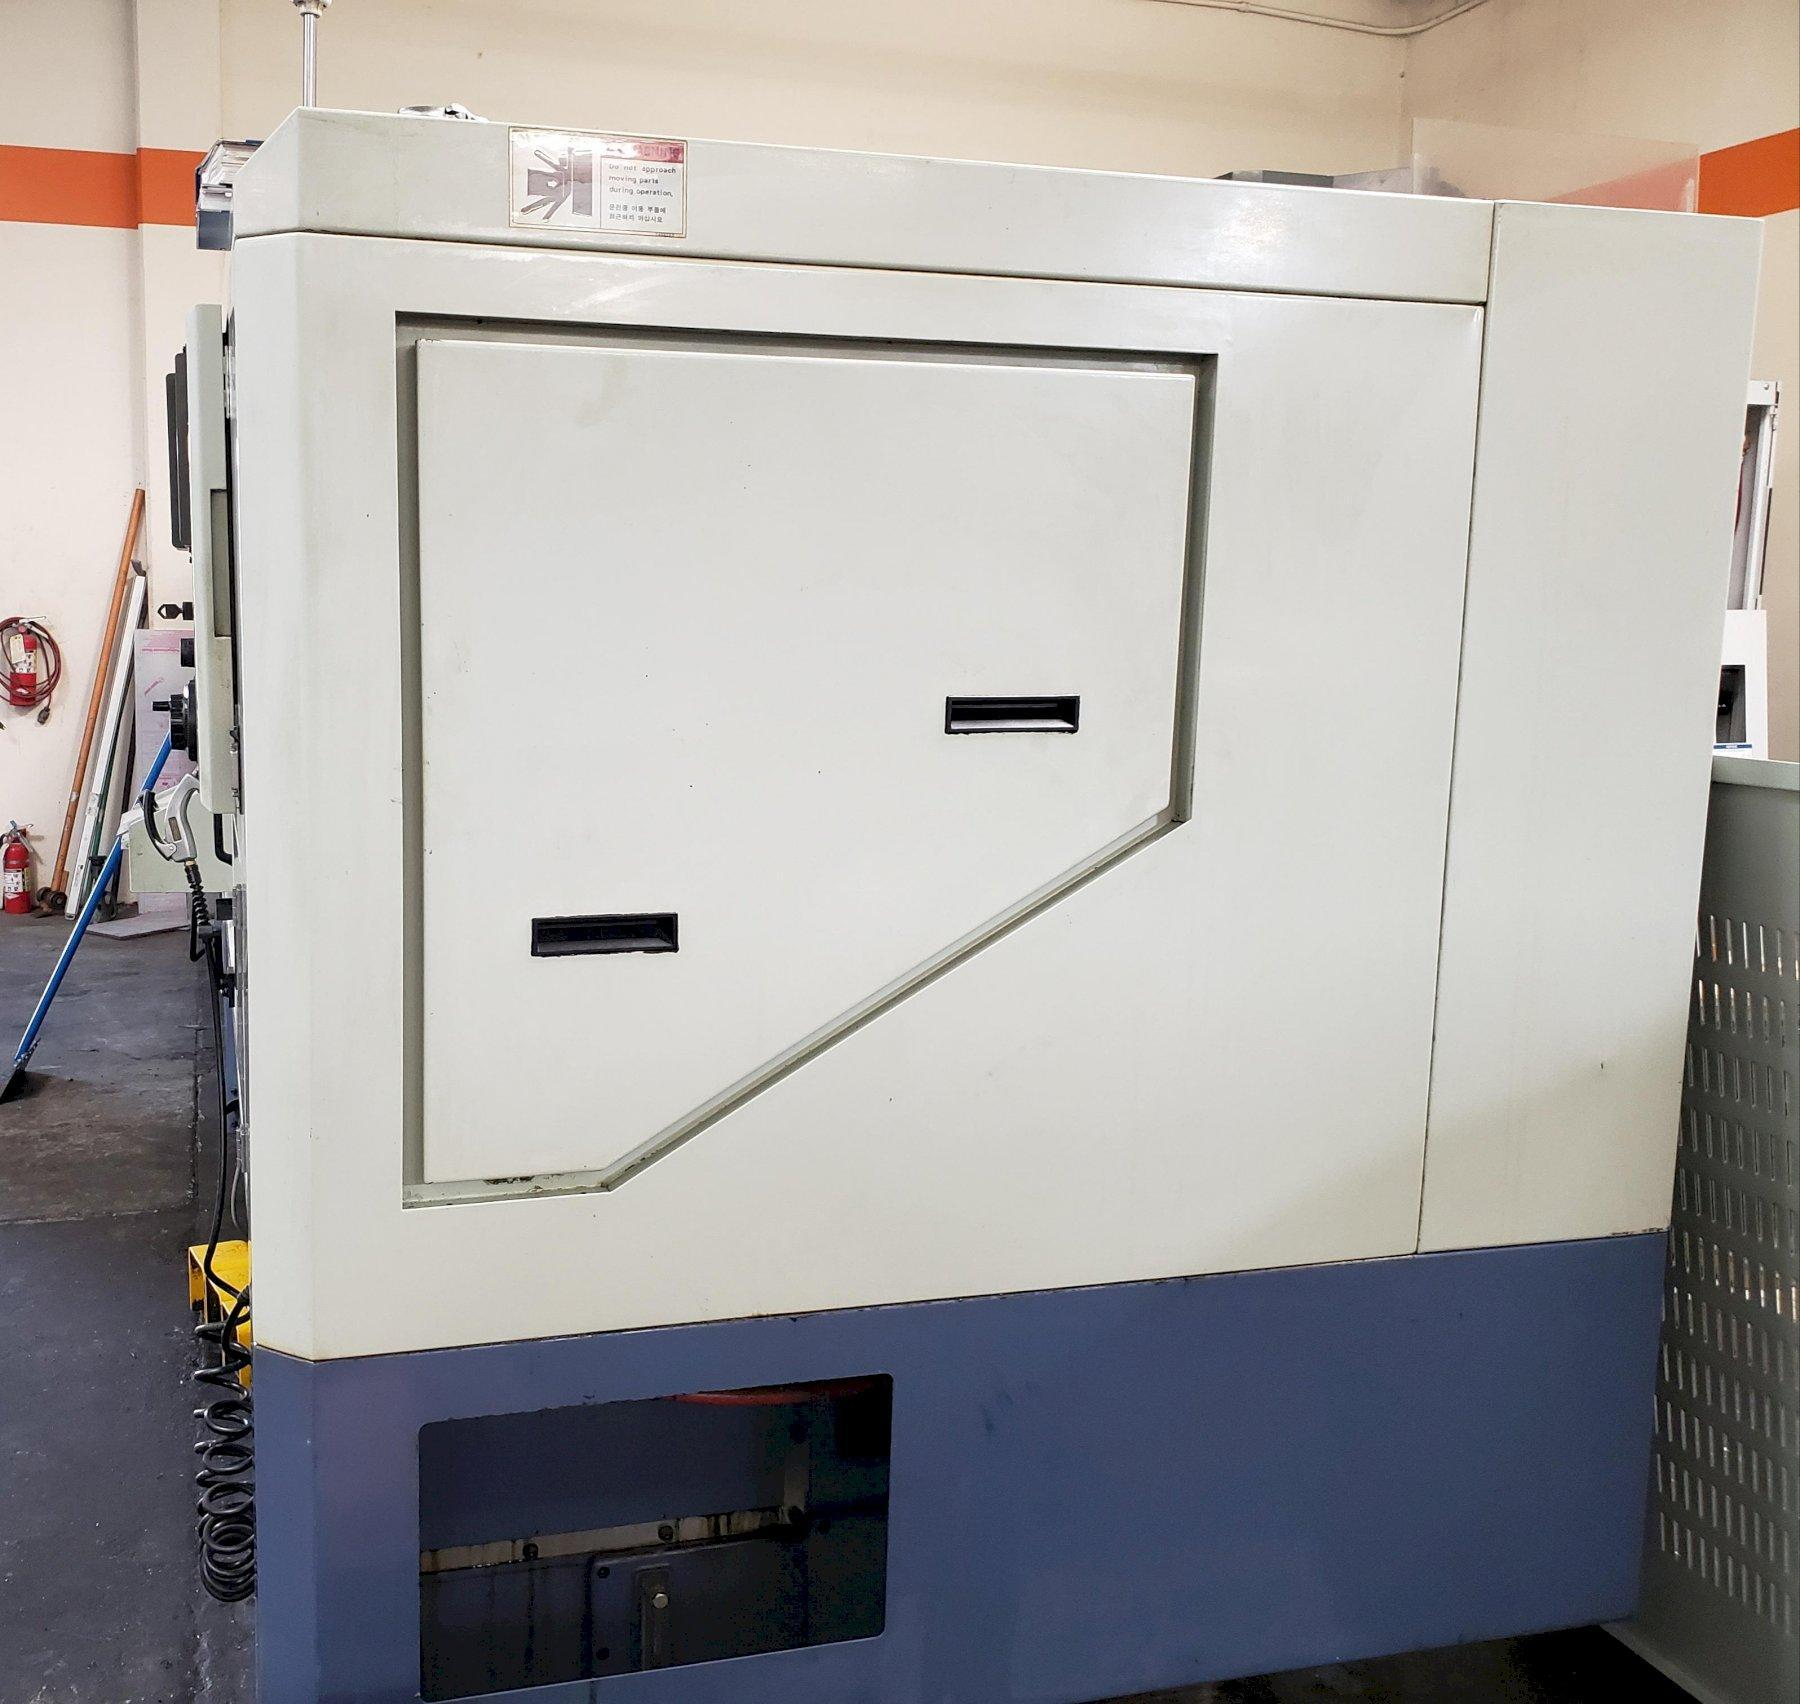 "Hwacheon Hi-Tech 200AI CNC Lathe 2003 with: Fanuc Oi-T CNC Control, 8"" Chuck, Tool Presetter, Tailstock, Air Gun, Coolant Tank, and Chip Conveyor."